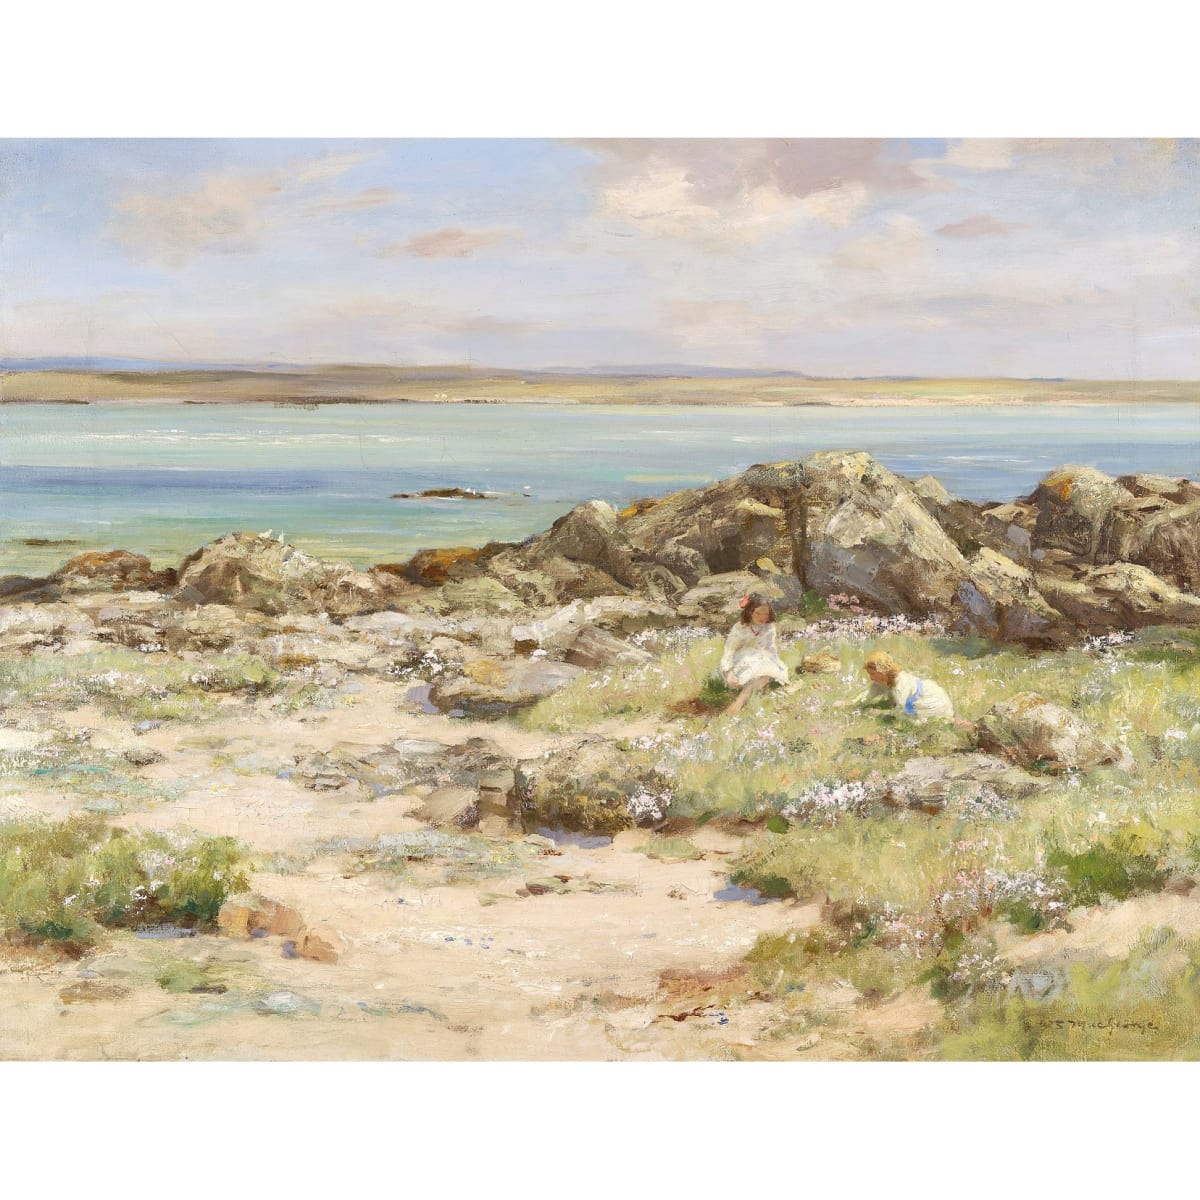 William Stewart MacGeorge Sea Pinks signed oil on canvas 28 x 36 inches